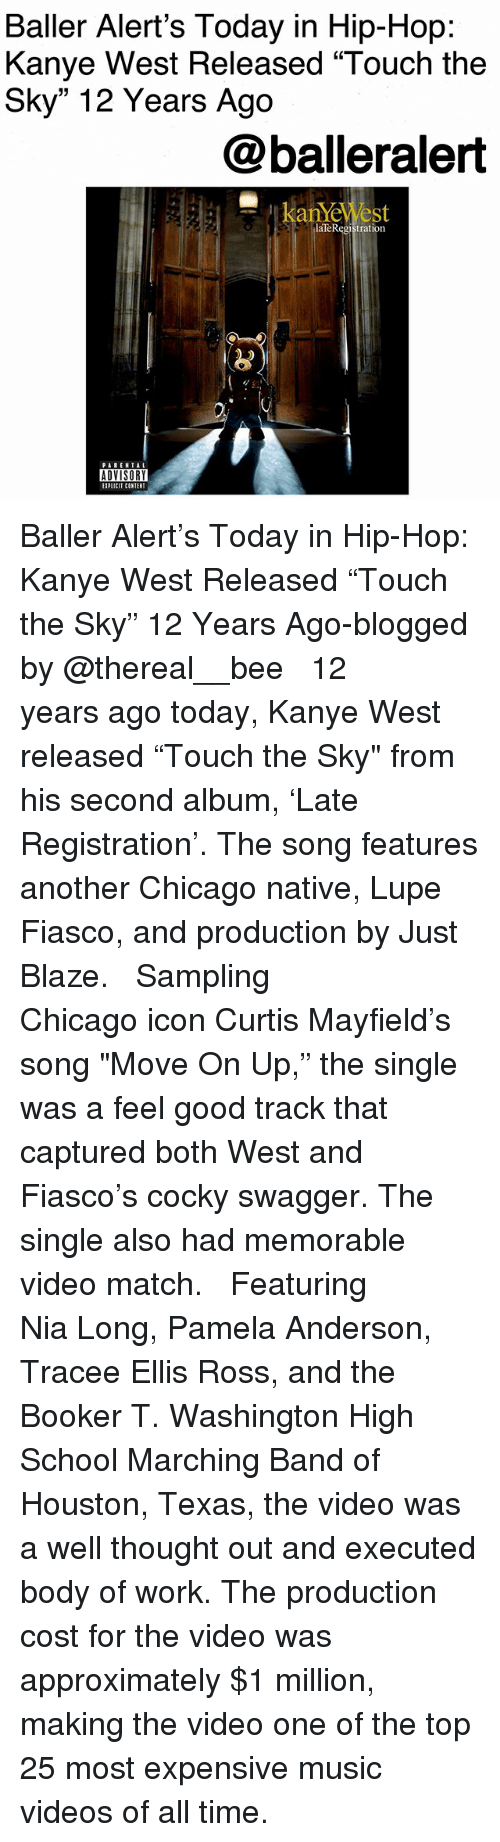 "Baller Alert, Chicago, and Kanye: Baller Alert's Today in Hip-Hop:  Kanye West Released ""Touch the  Sky"" 12 Years Ago  @balleralert  laTeRegistration  ADVISORY  IPLICIT CONTENT Baller Alert's Today in Hip-Hop: Kanye West Released ""Touch the Sky"" 12 Years Ago-blogged by @thereal__bee ⠀⠀⠀⠀⠀⠀⠀⠀⠀ ⠀⠀ 12 years ago today, Kanye West released ""Touch the Sky"" from his second album, 'Late Registration'. The song features another Chicago native, Lupe Fiasco, and production by Just Blaze. ⠀⠀⠀⠀⠀⠀⠀⠀⠀ ⠀⠀ Sampling Chicago icon Curtis Mayfield's song ""Move On Up,"" the single was a feel good track that captured both West and Fiasco's cocky swagger. The single also had memorable video match. ⠀⠀⠀⠀⠀⠀⠀⠀⠀ ⠀⠀ Featuring Nia Long, Pamela Anderson, Tracee Ellis Ross, and the Booker T. Washington High School Marching Band of Houston, Texas, the video was a well thought out and executed body of work. The production cost for the video was approximately $1 million, making the video one of the top 25 most expensive music videos of all time."